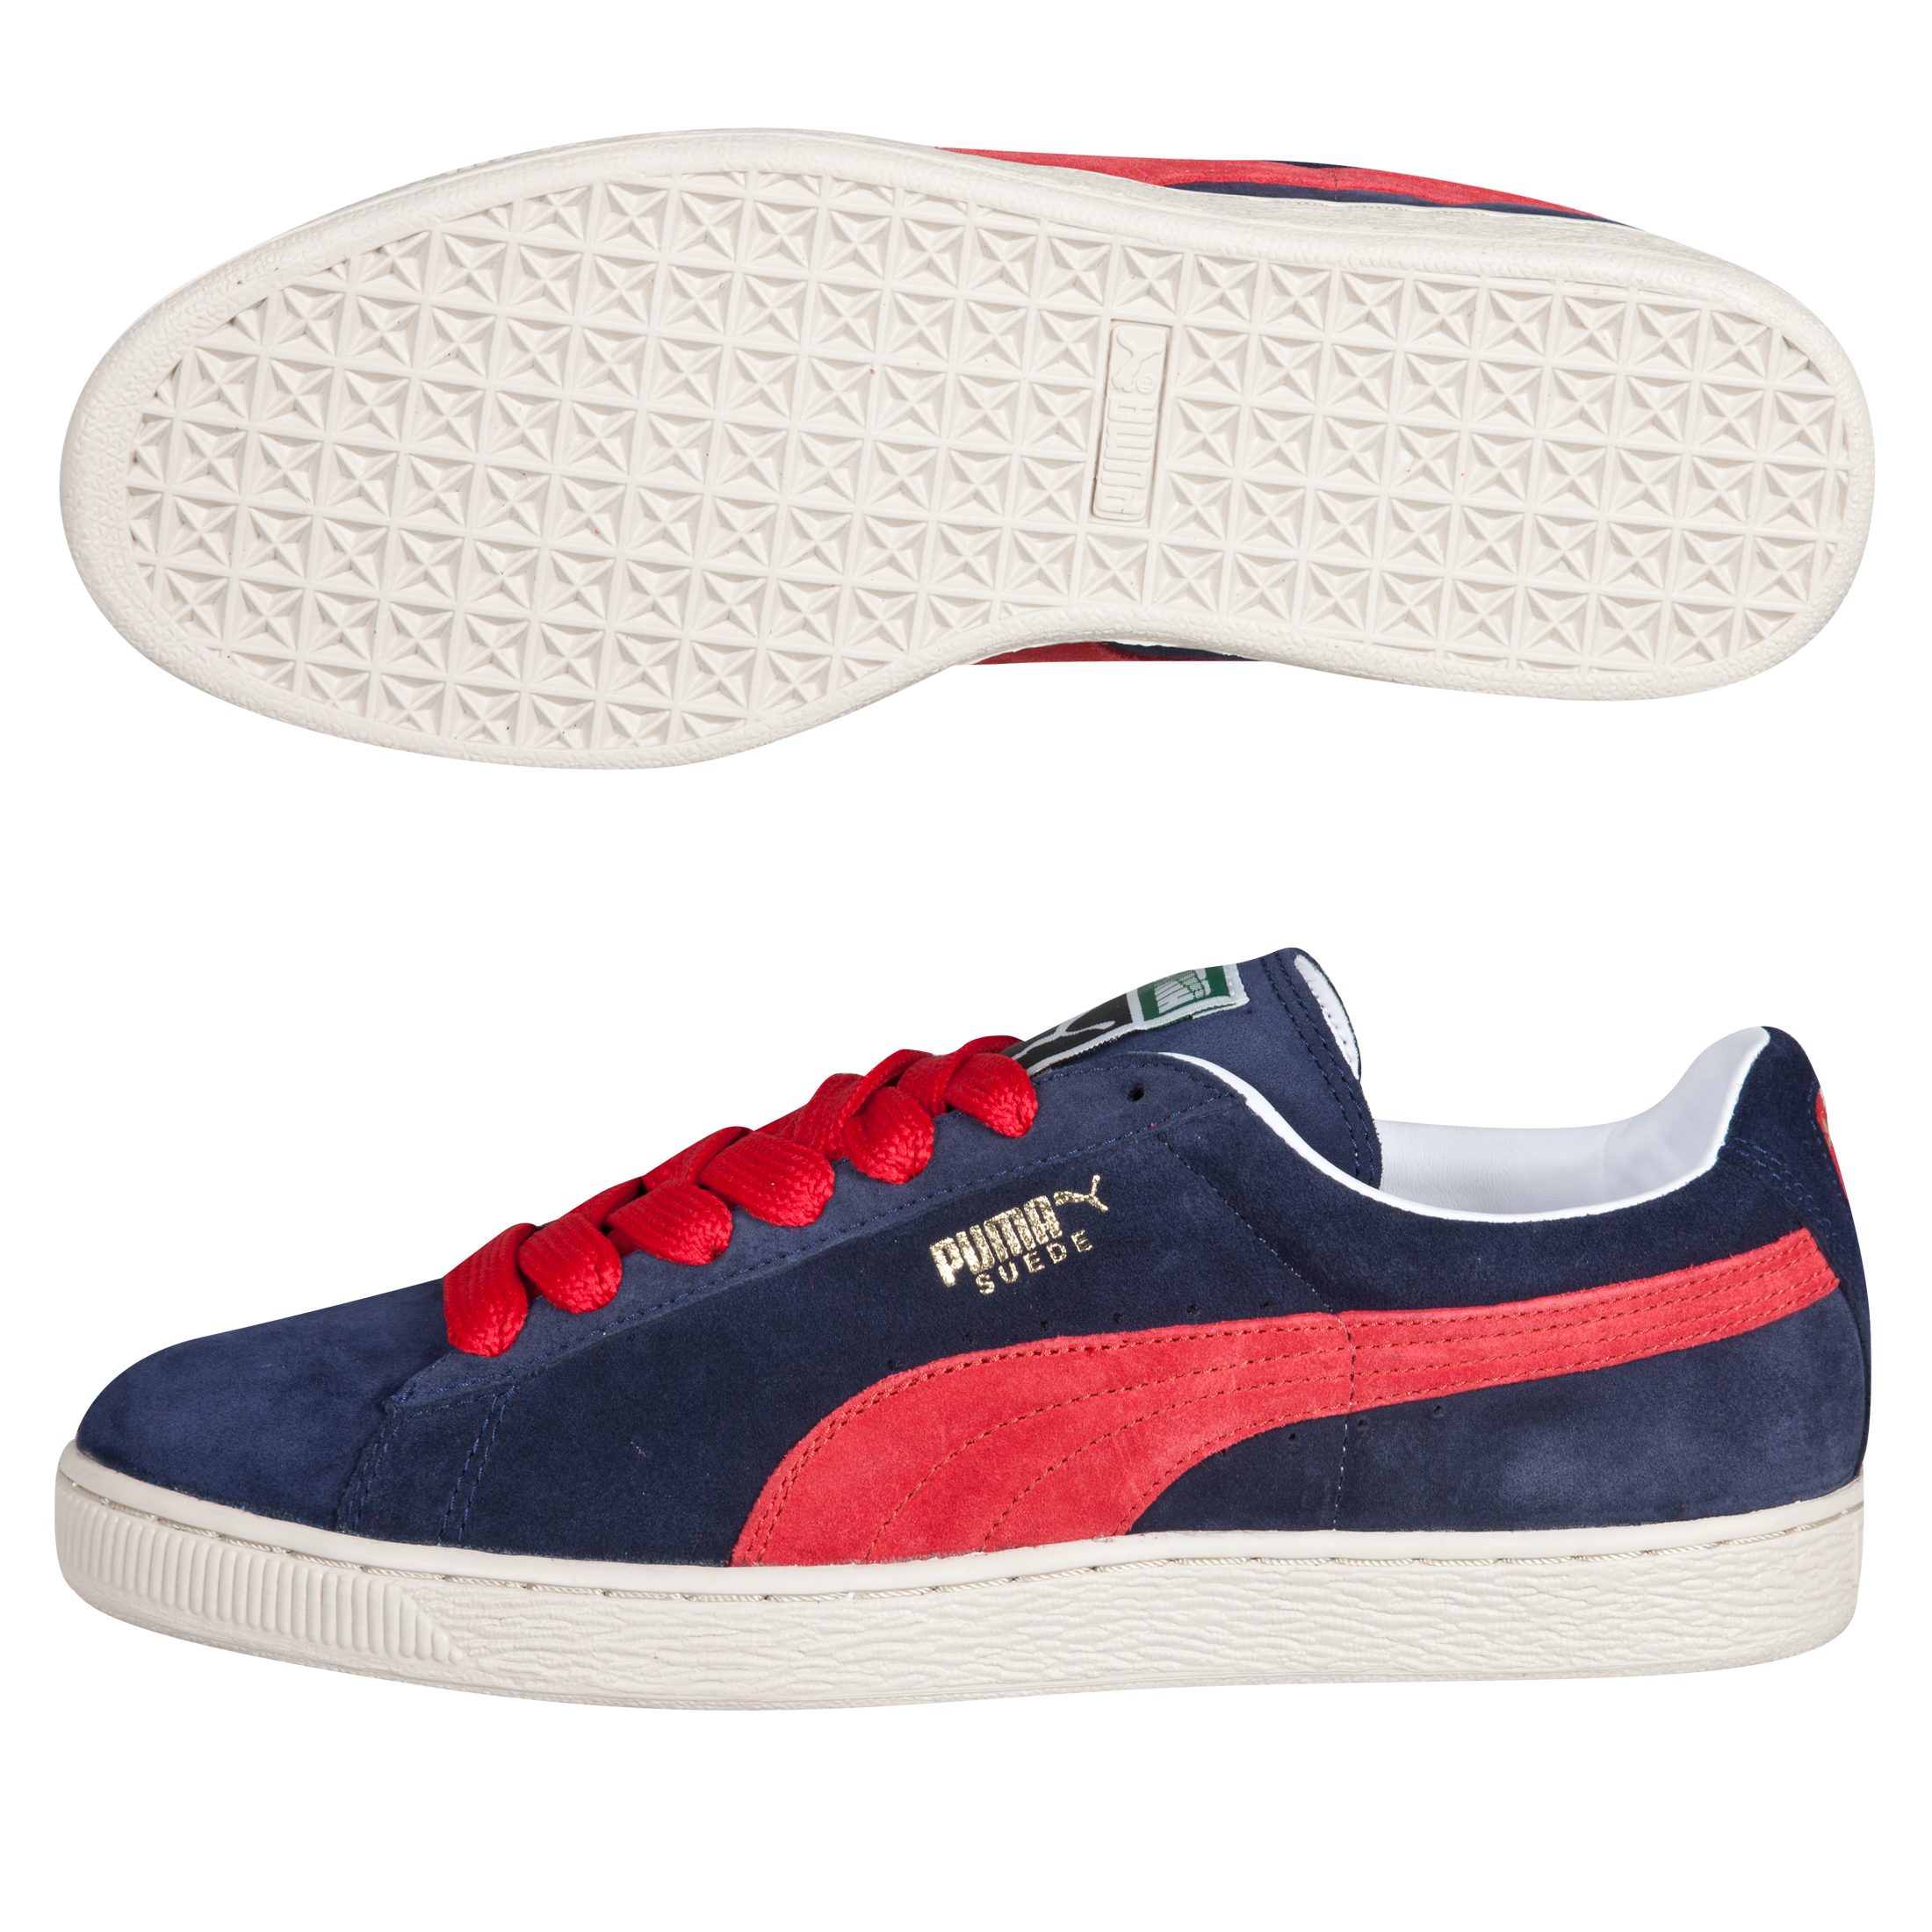 Puma Suede Classic Eco - Peacoat/Ribbon Red/Birch